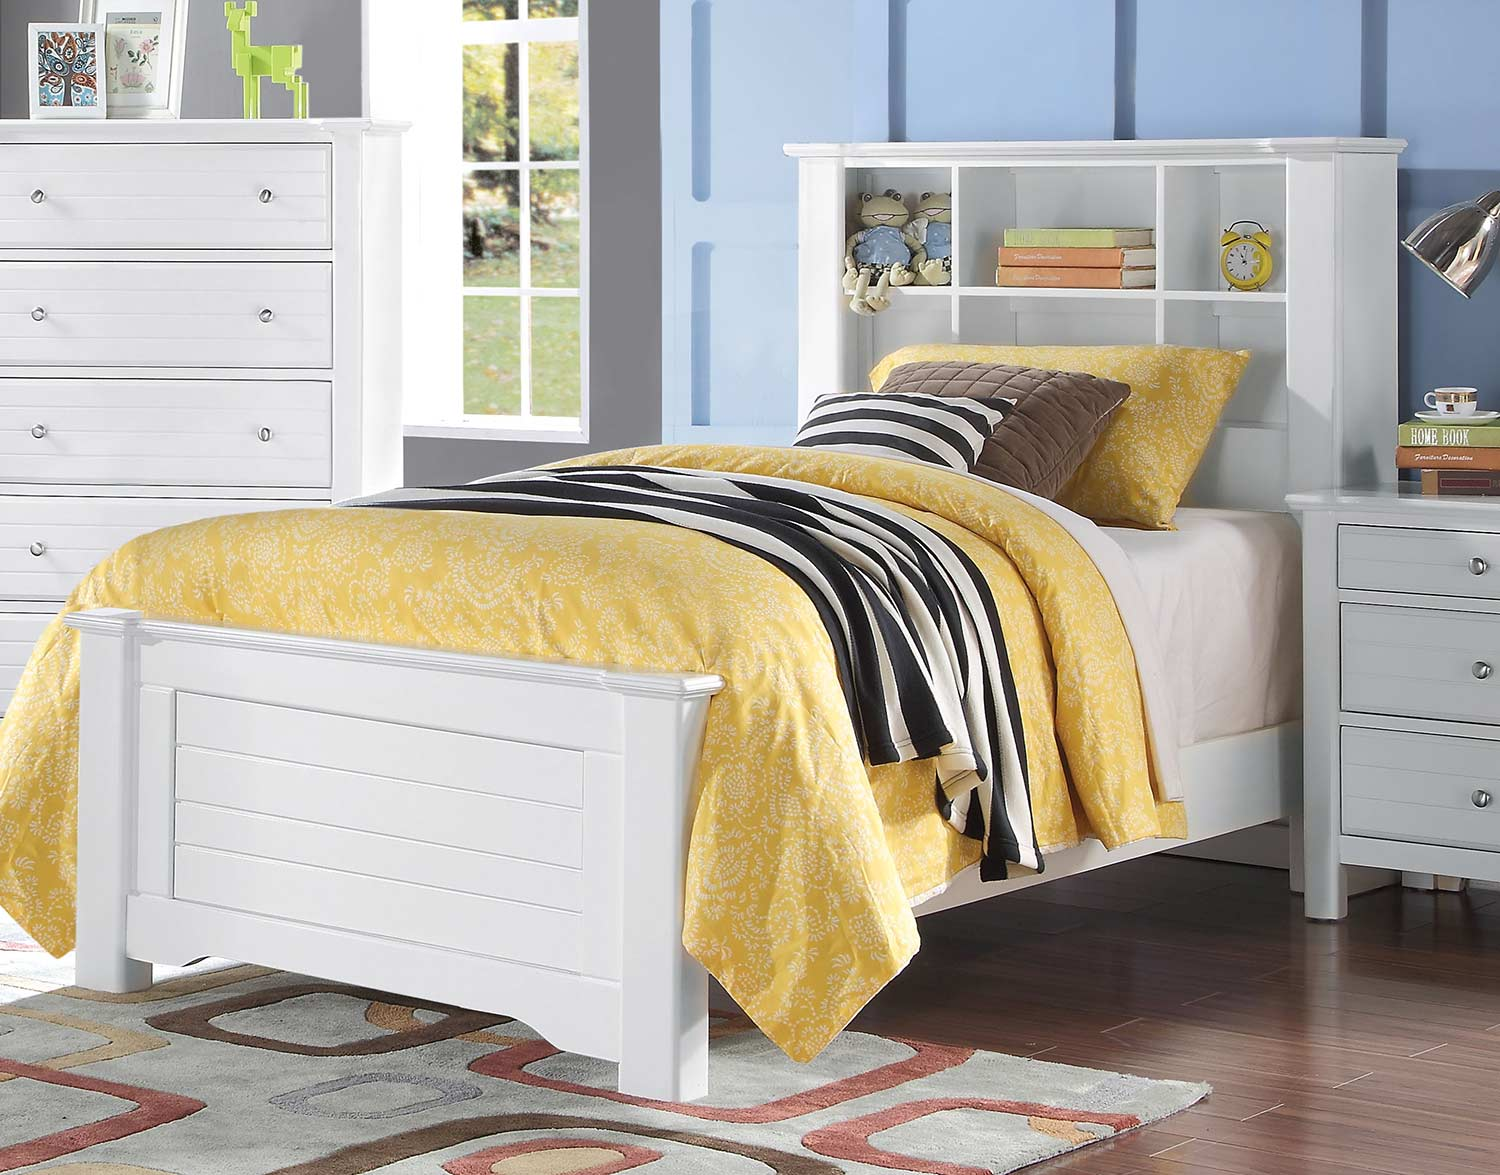 Acme Mallowsea Bed - White